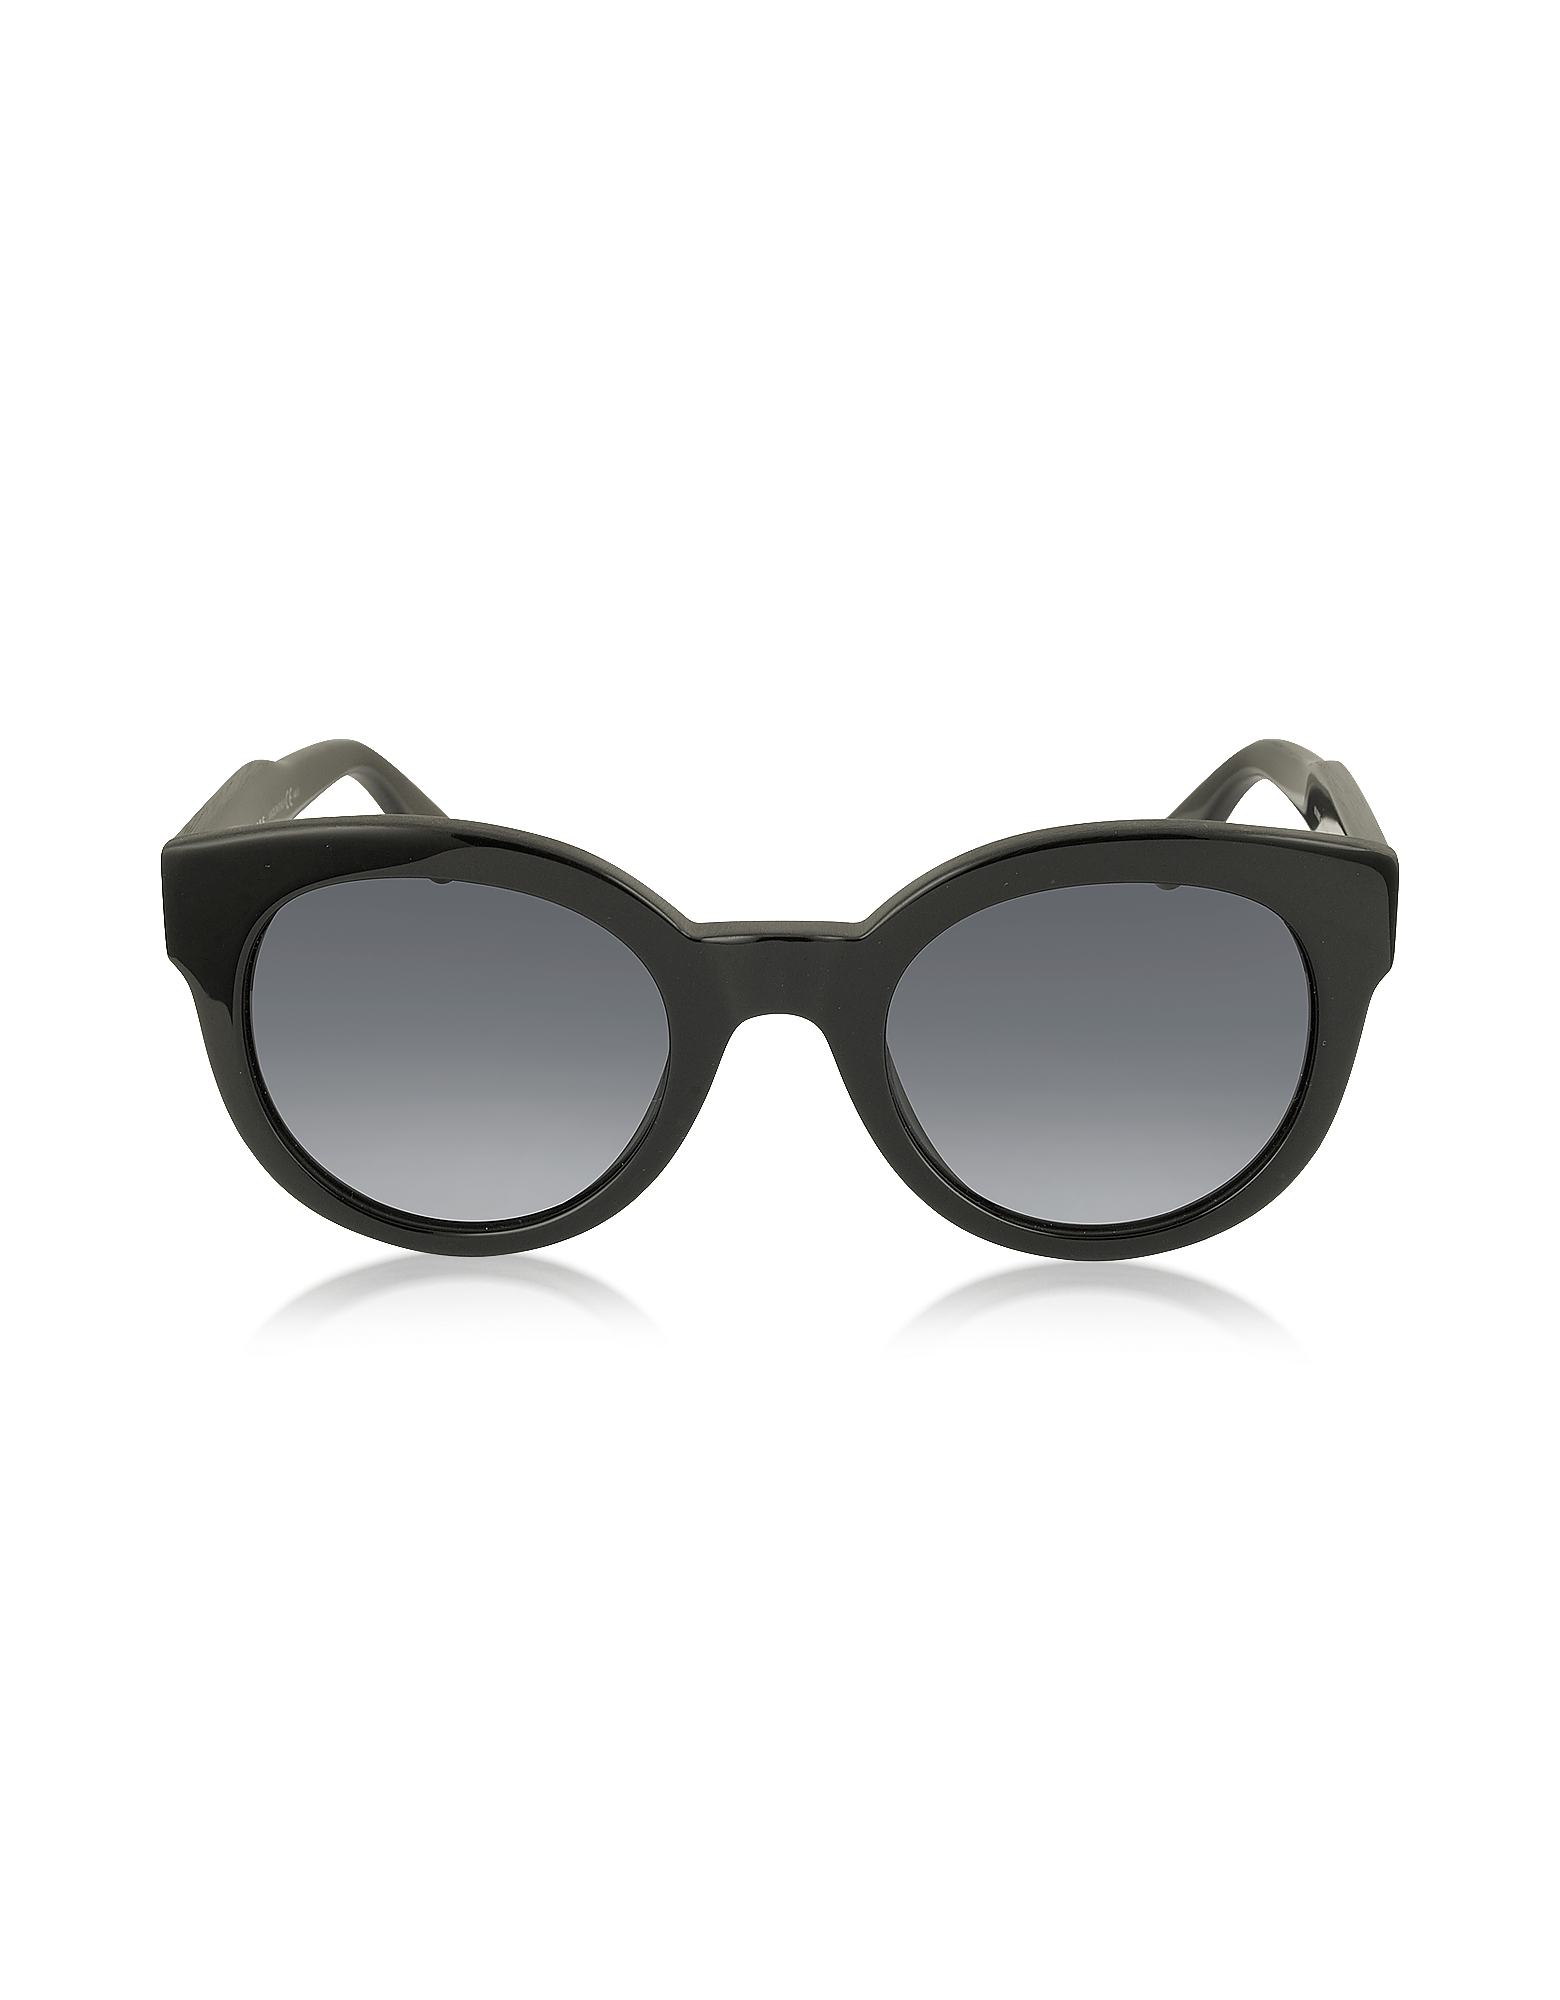 Marc Jacobs Sunglasses, MJ 588/S Black Touch Round Acetate Women's Sunglasses